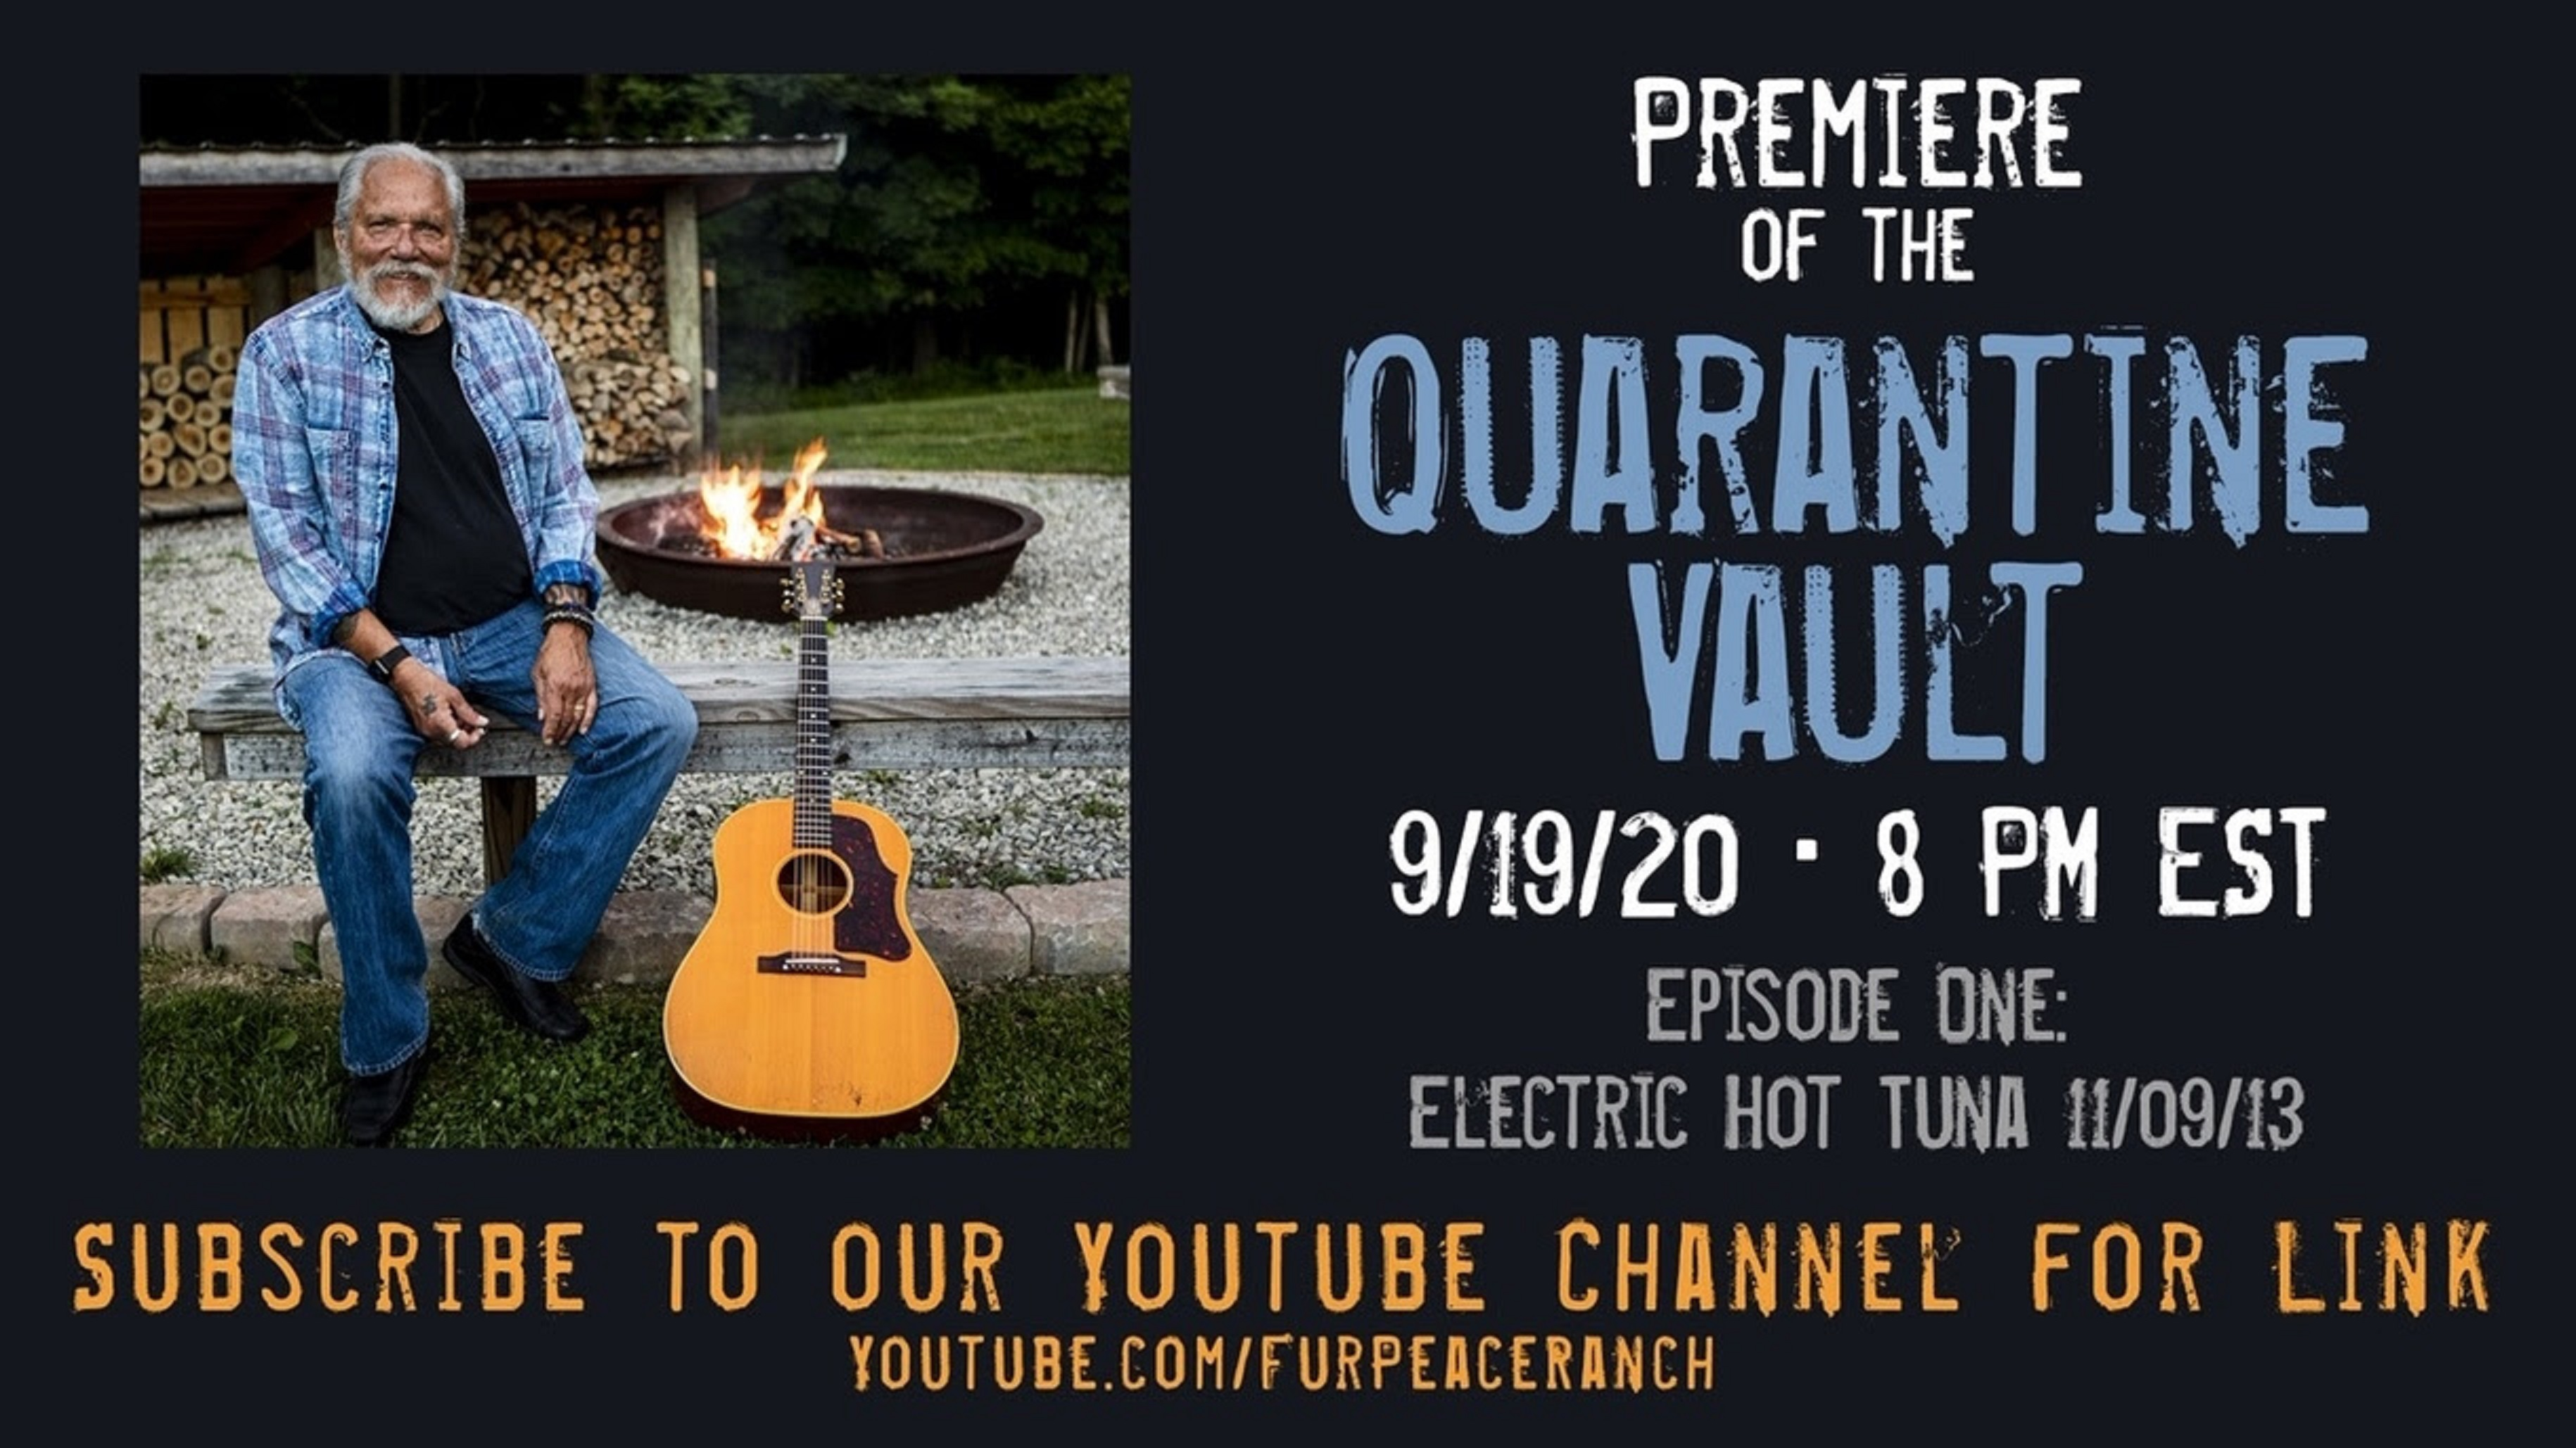 Hot Tuna History! Quarantine Vault Concerts Premieres Saturday